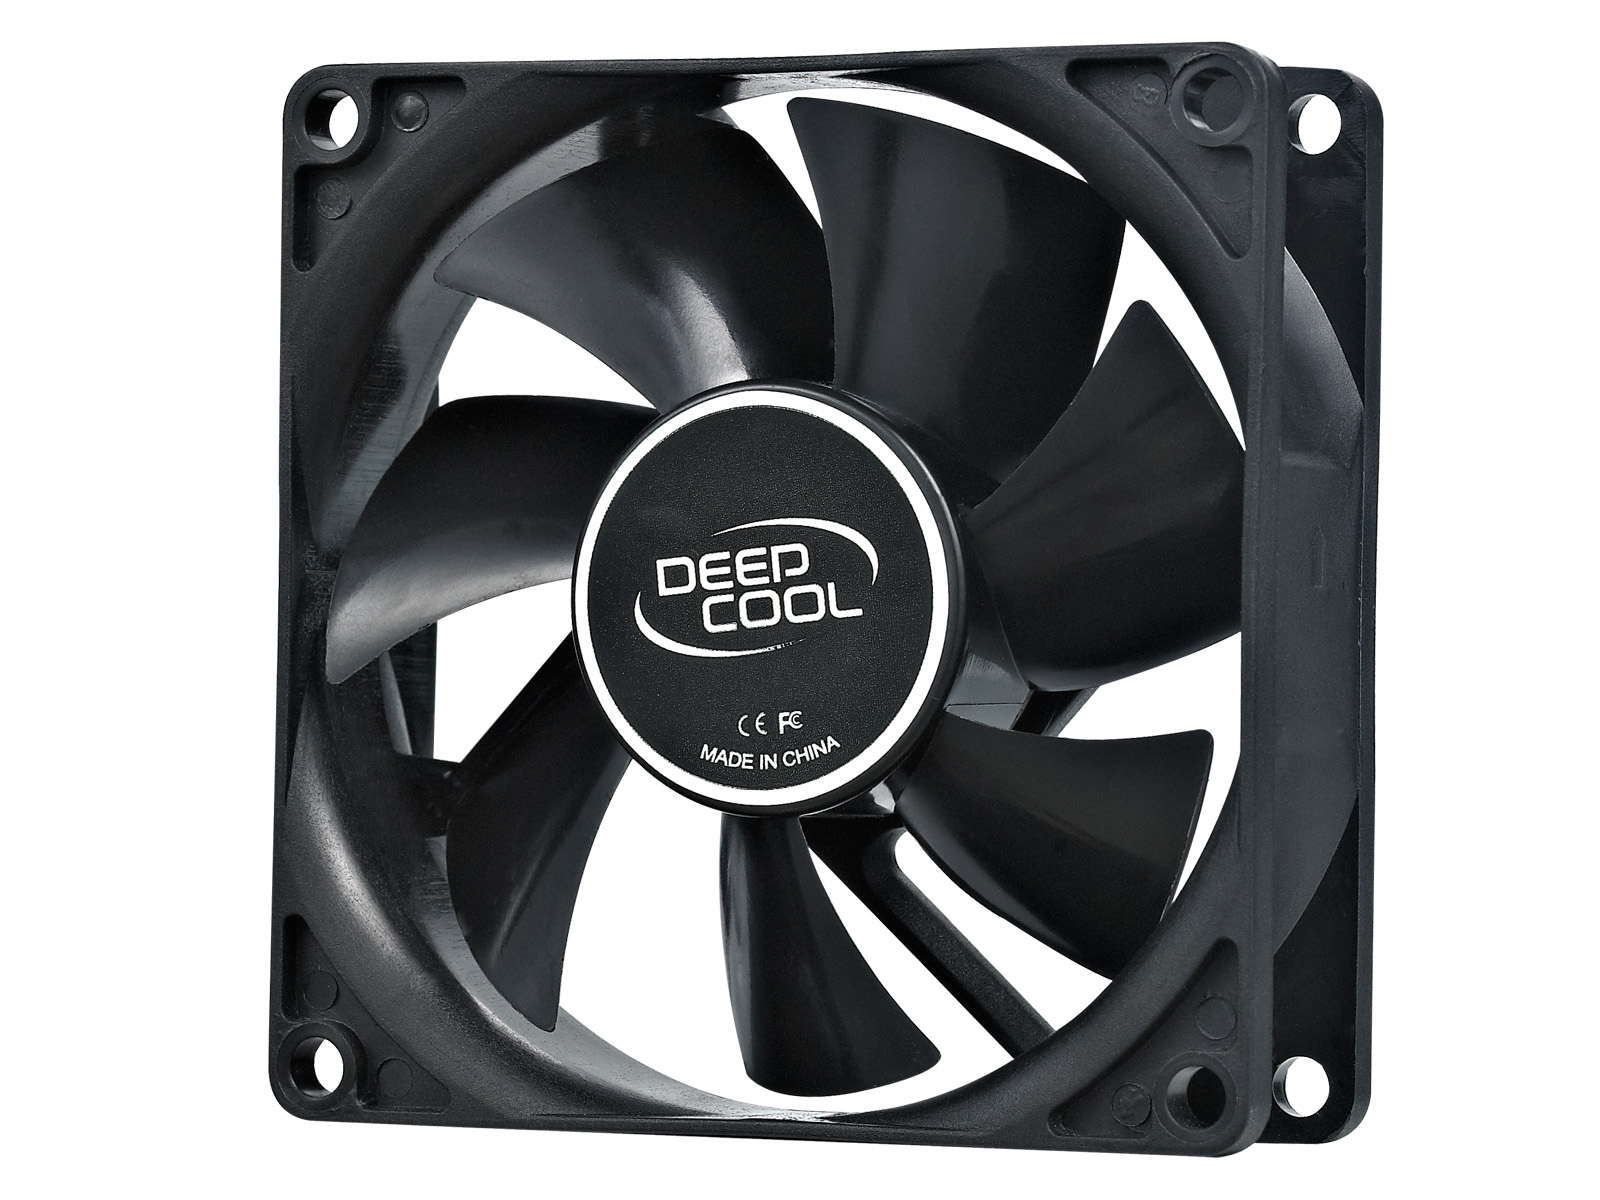 Deepcool XFAN 80mm Case Fan image